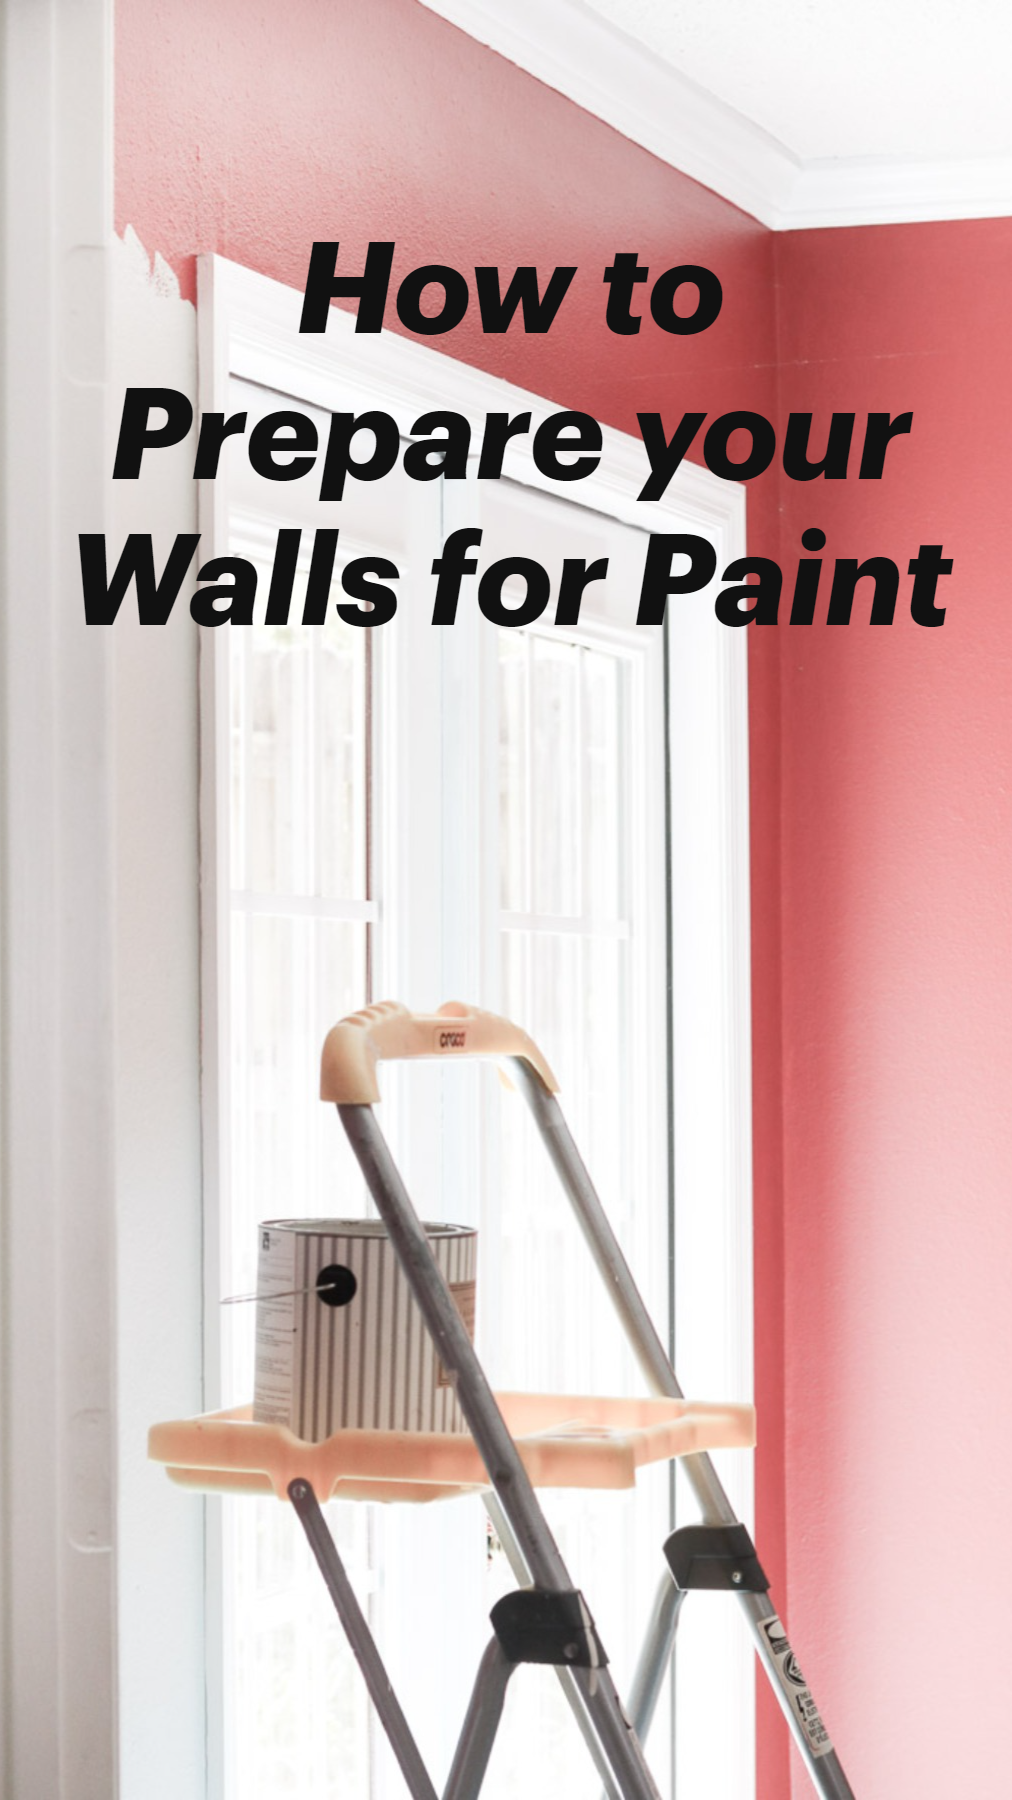 How to Prepare your Walls for Paint